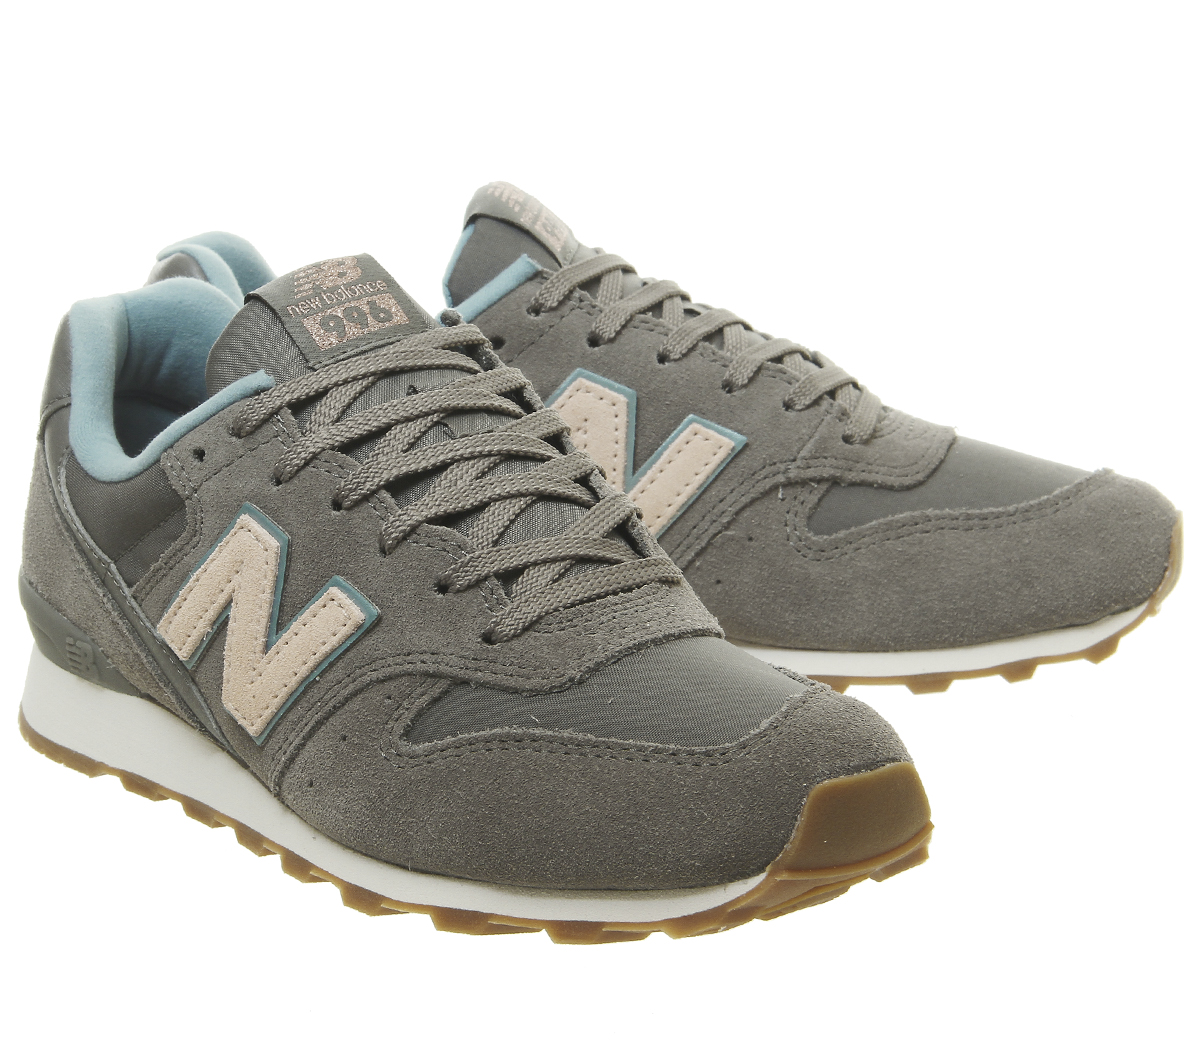 online store b39fc 84c76 Details about Womens New Balance 996 Trainers Charcoal Grey Blush Citadel  Exclusive Trainers S